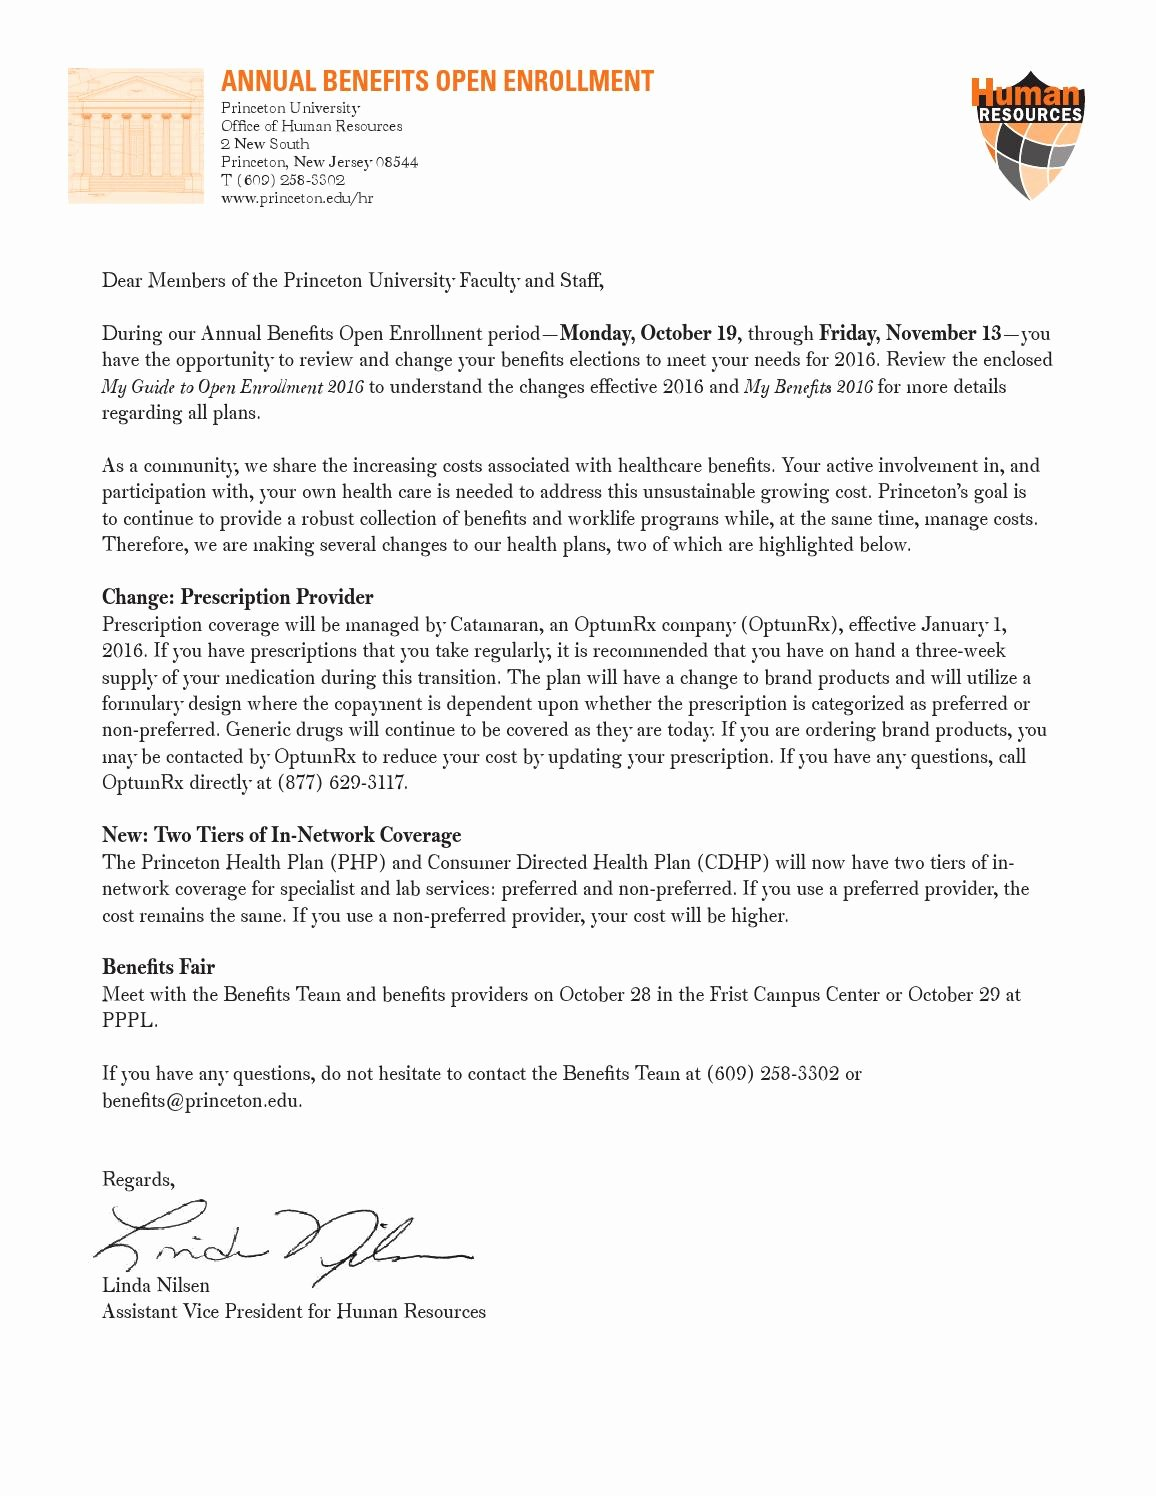 Open Enrollment Letter Template Elegant Open Enrollment Cover Letter for 2016 by Princeton